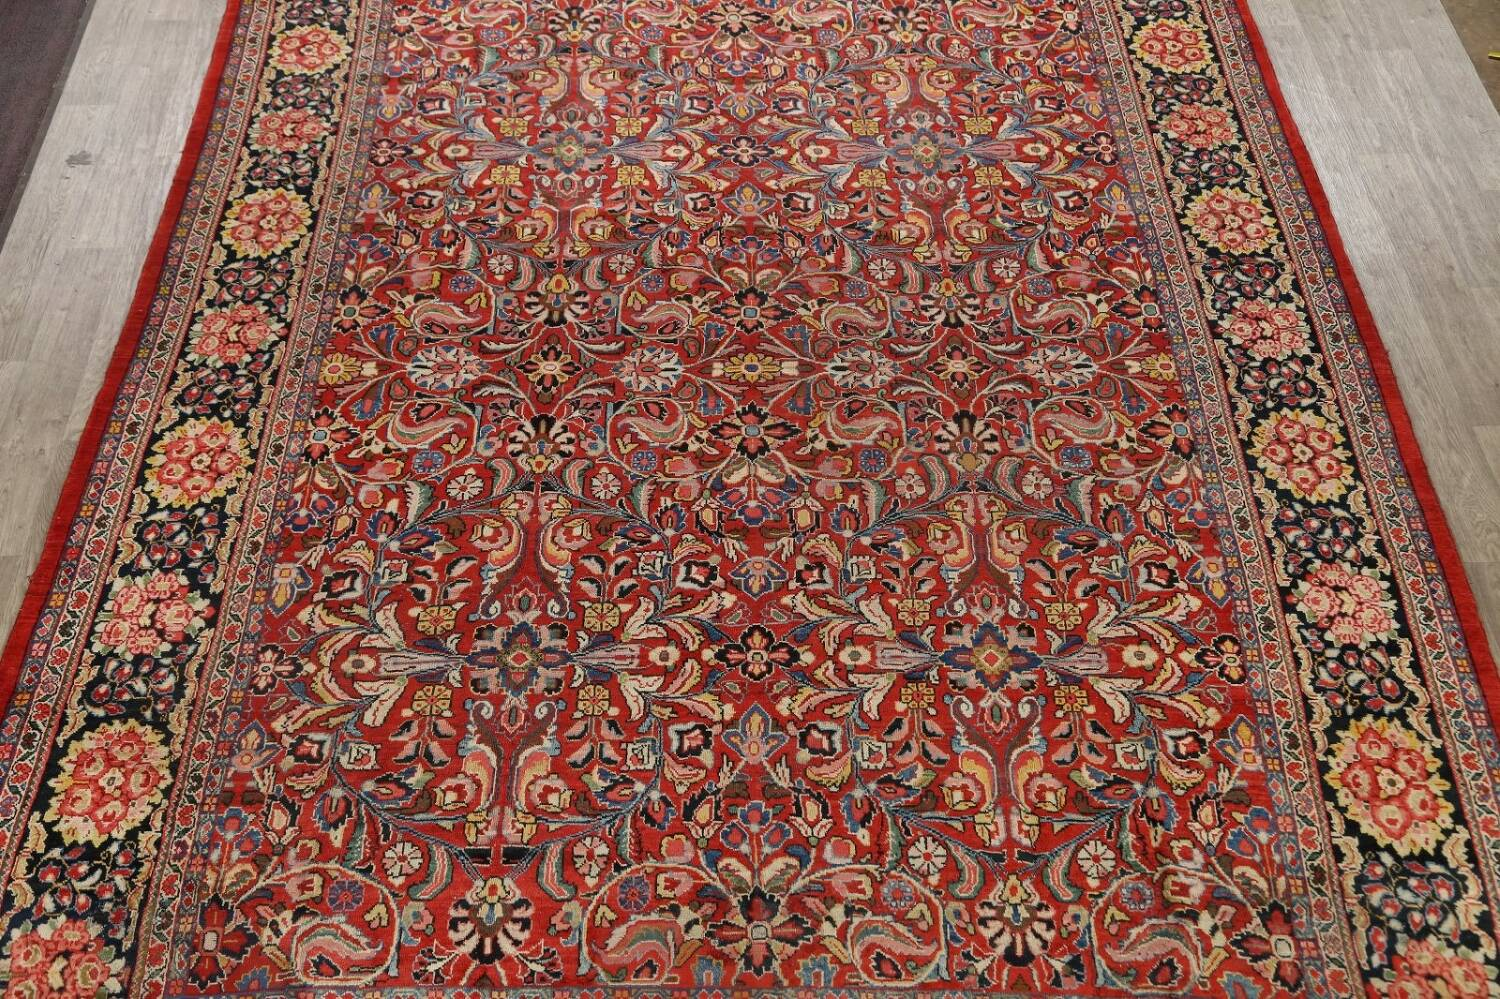 Antique Vegetable Dye Sultanabad Persian Area Rug 10x14 image 3